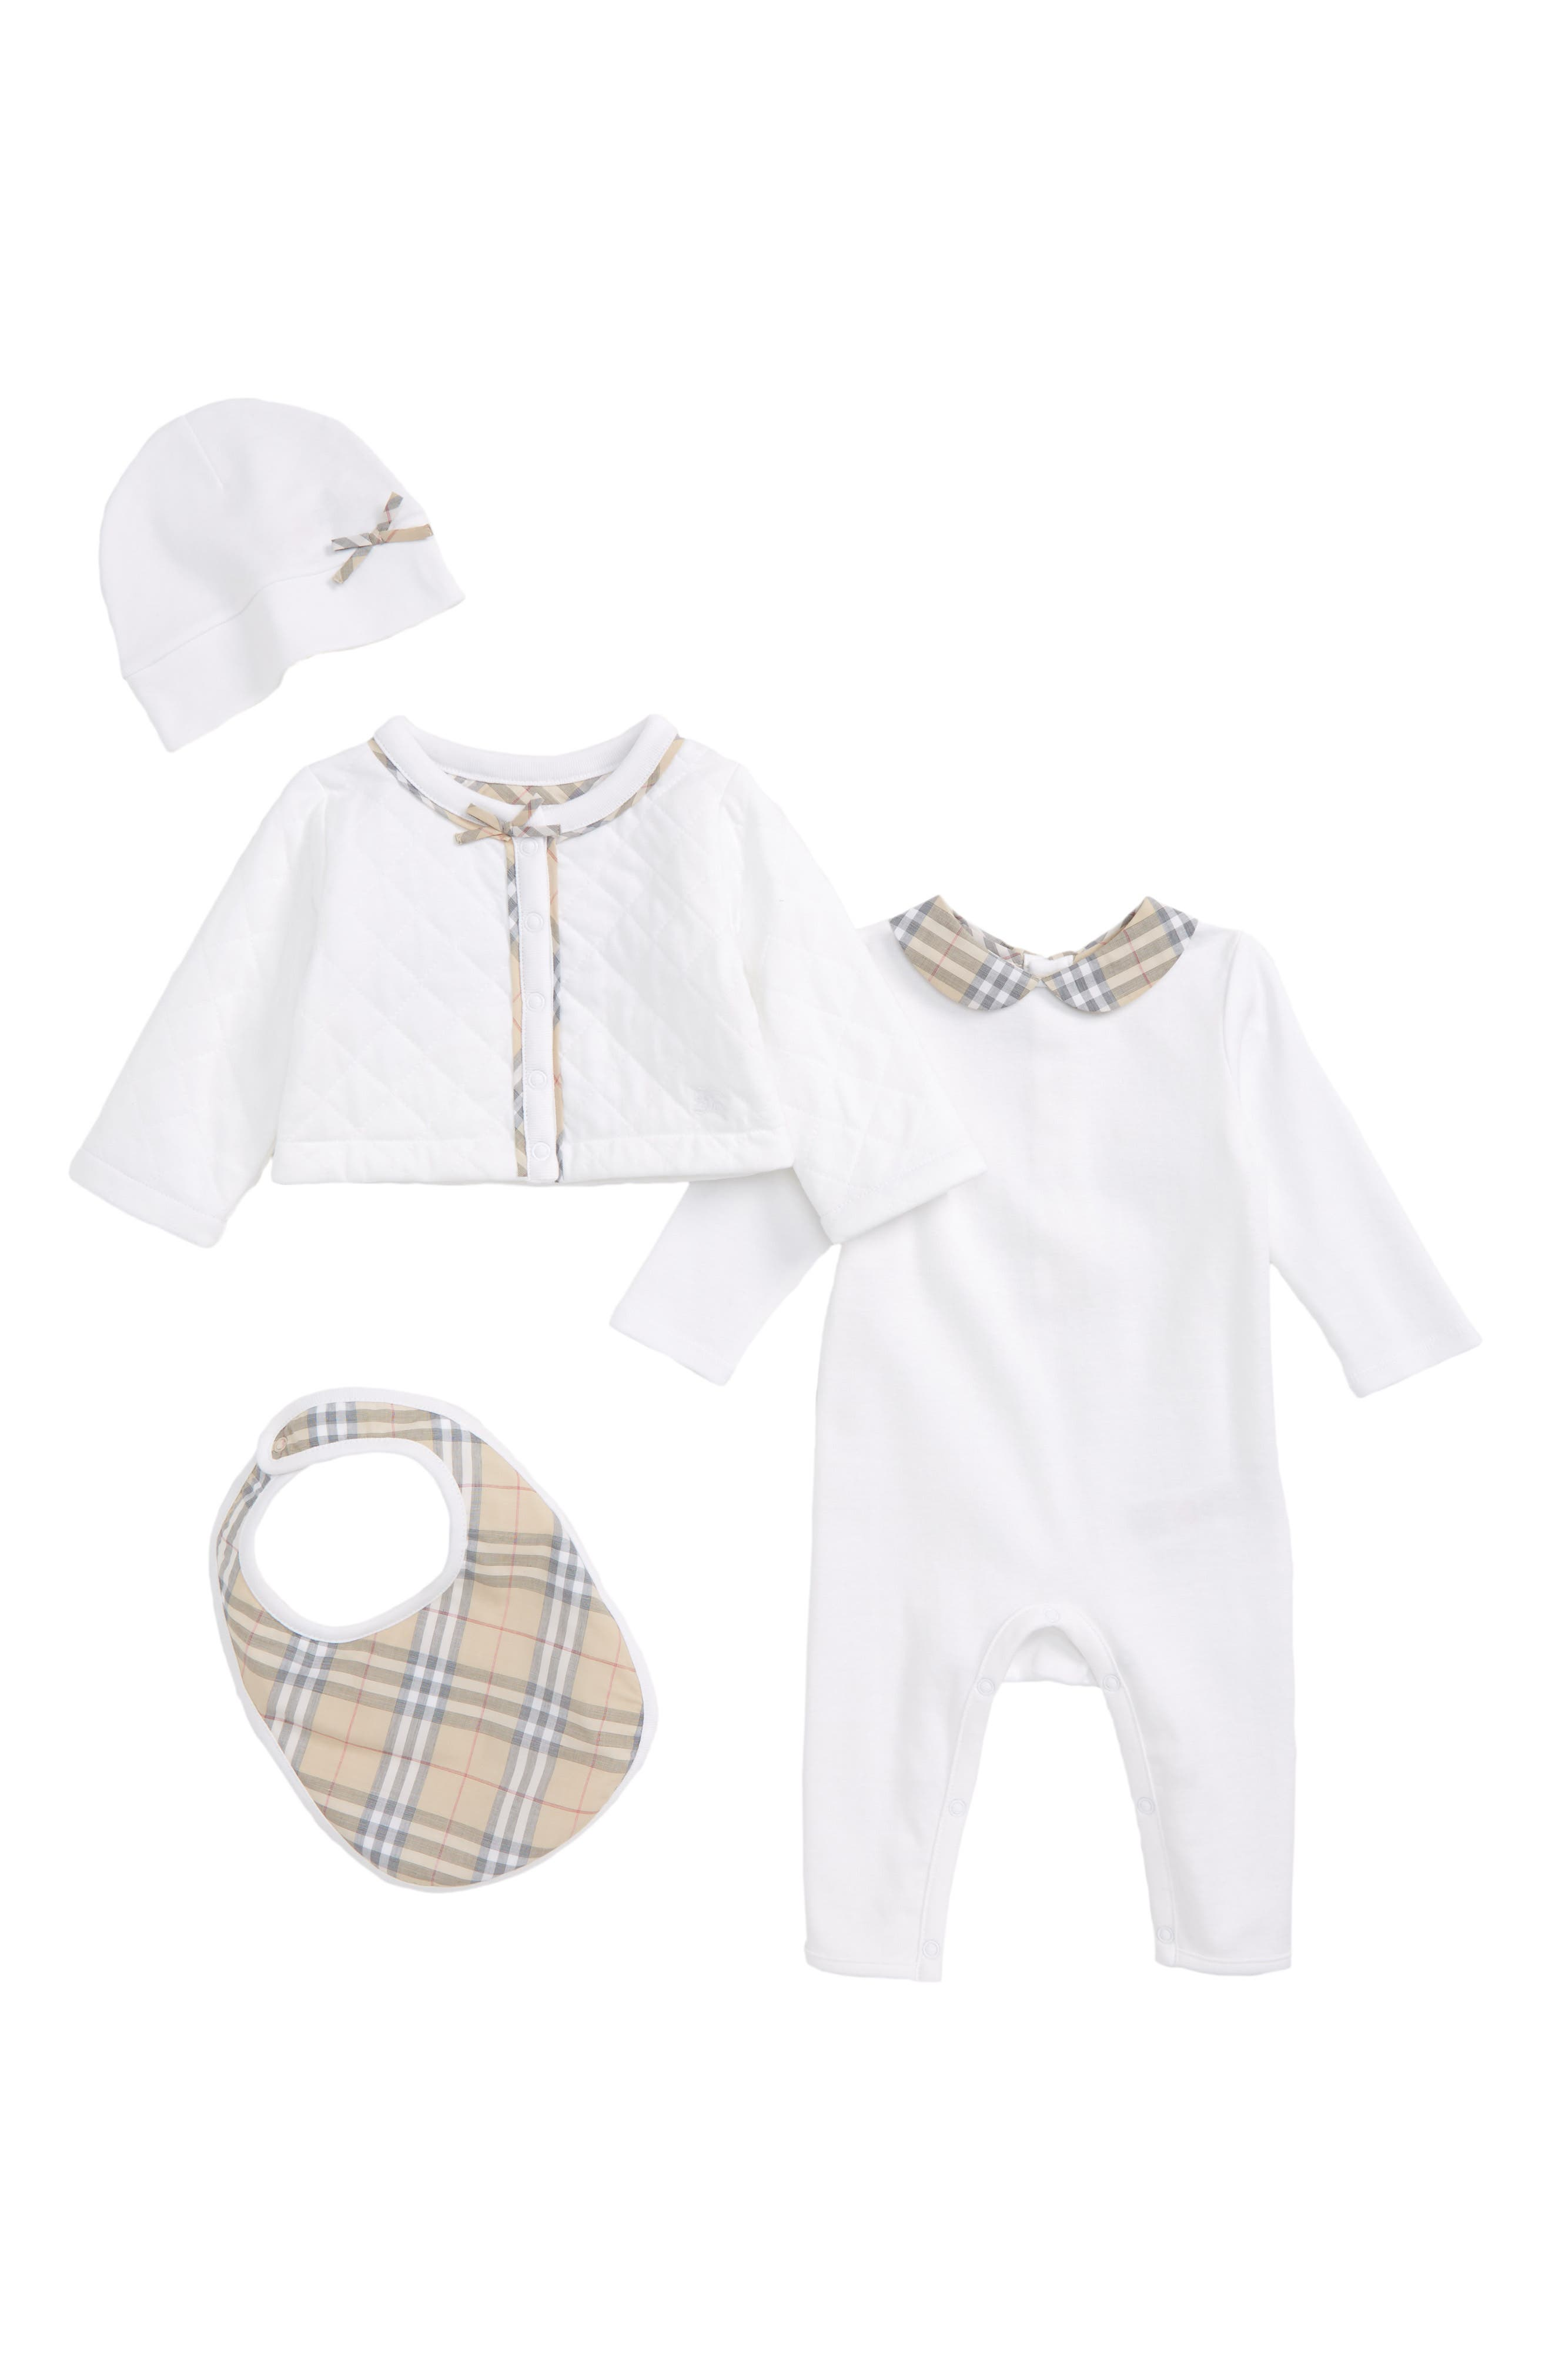 Zaria Romper, Jacket, Bib & Hat Set,                         Main,                         color,